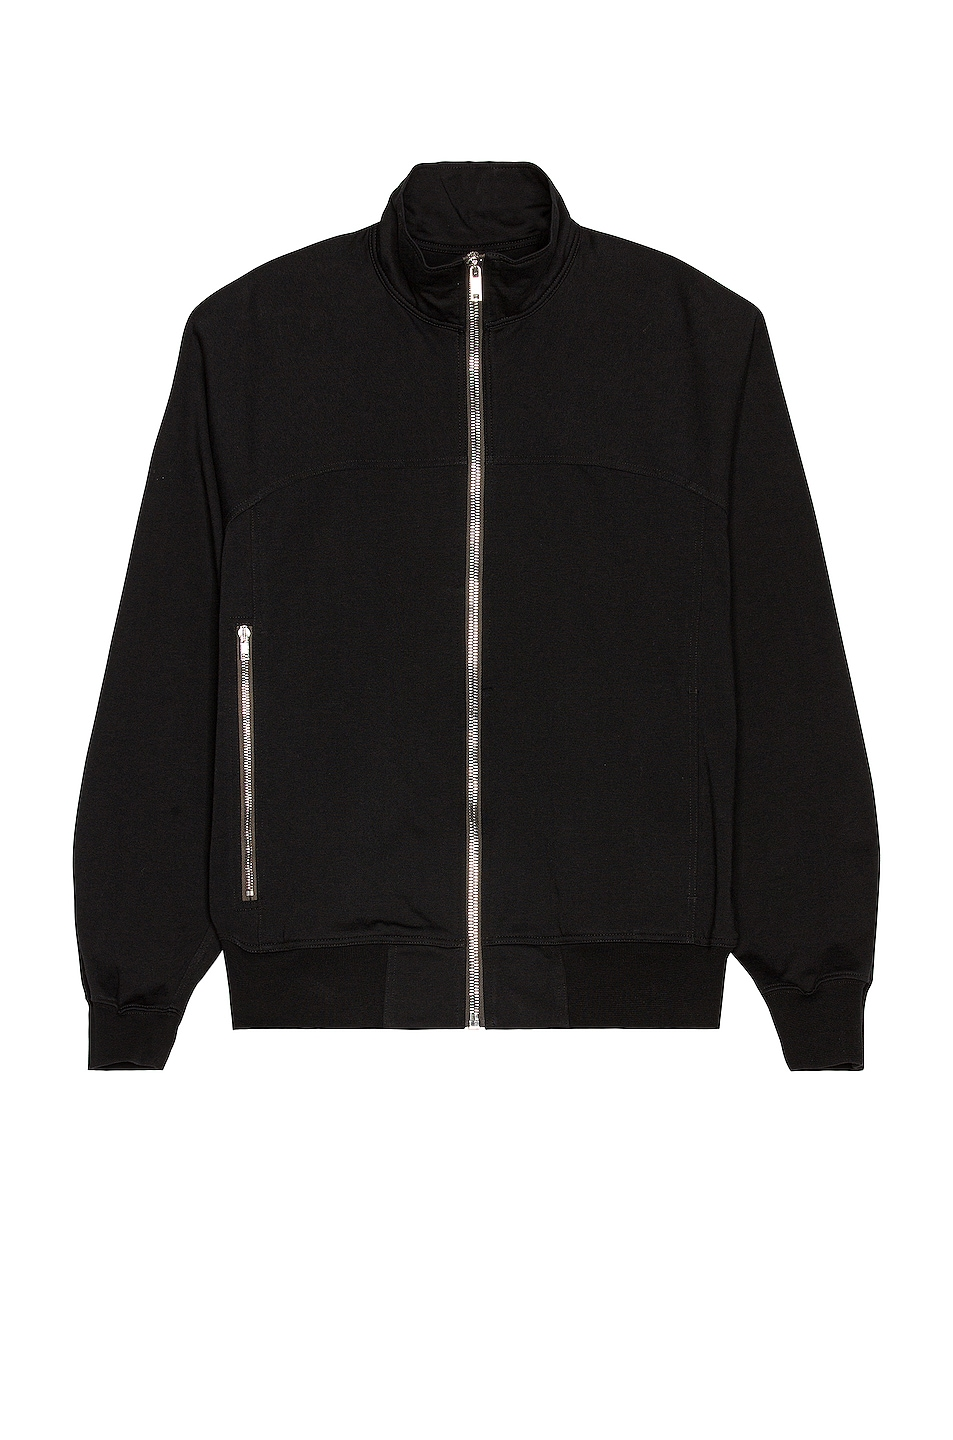 Image 1 of Rick Owens Zip Front Jacket in Black